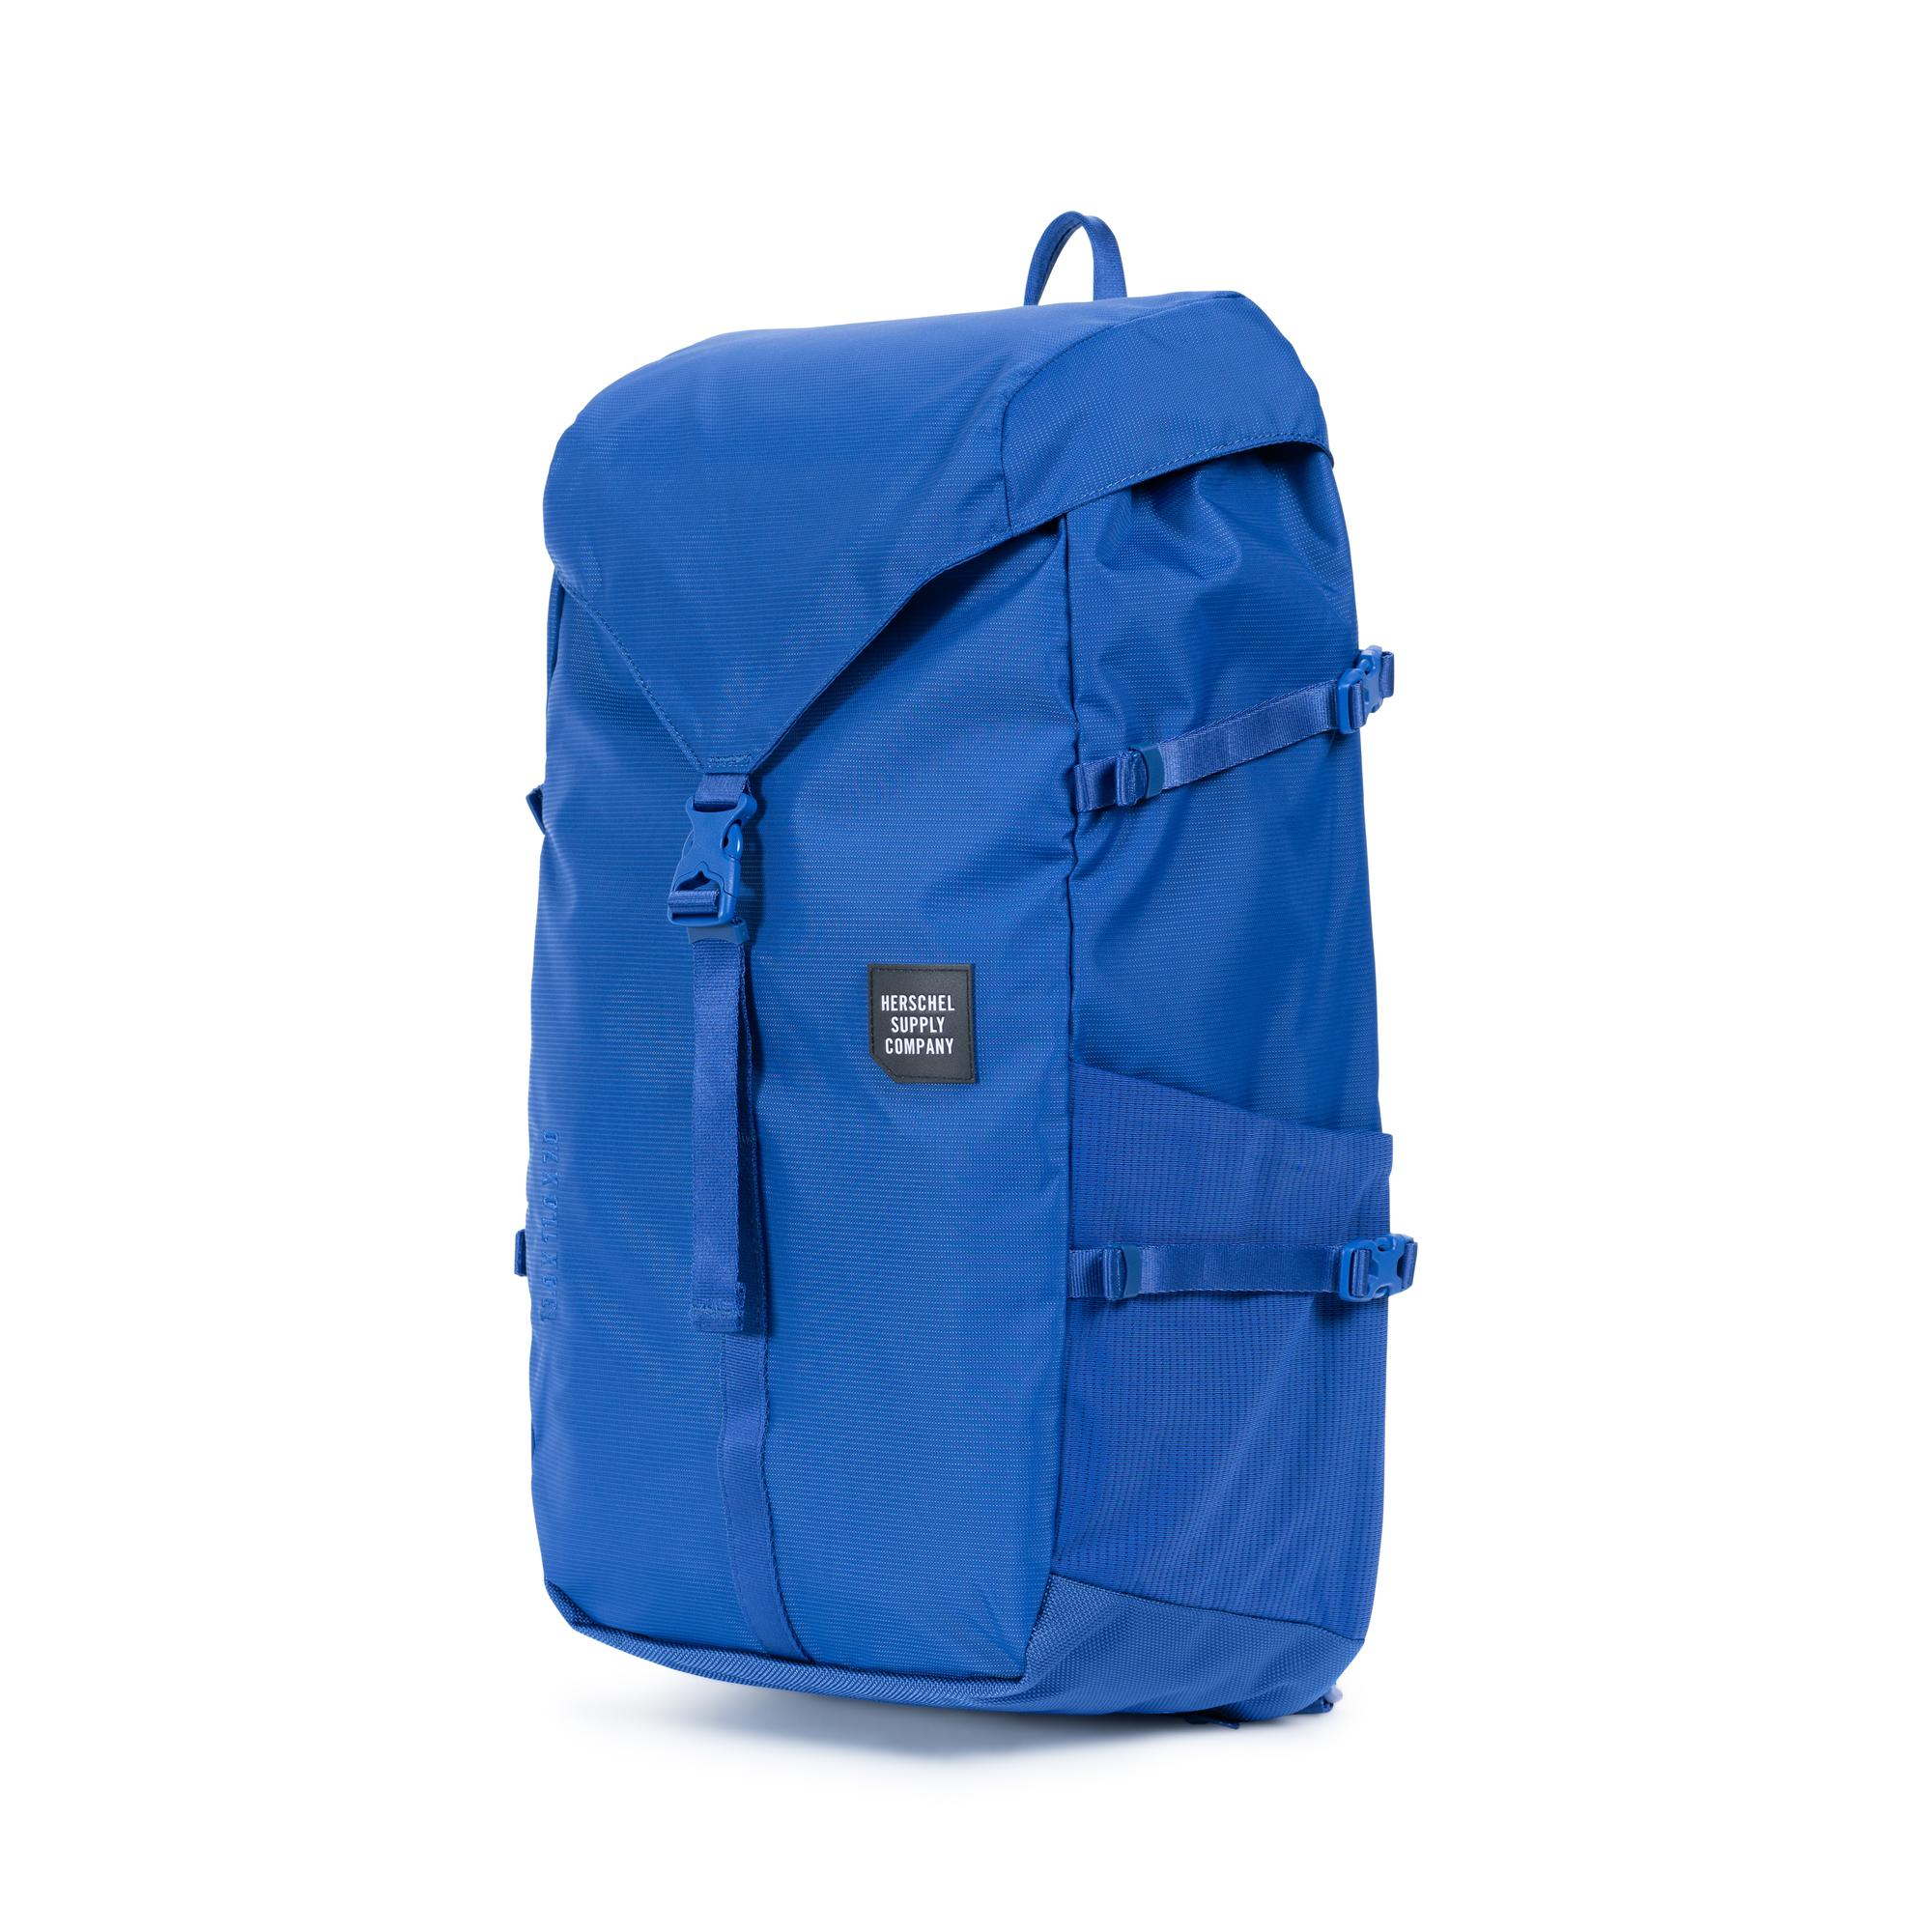 Barlow Backpack Large  8212cf0e2dcd7